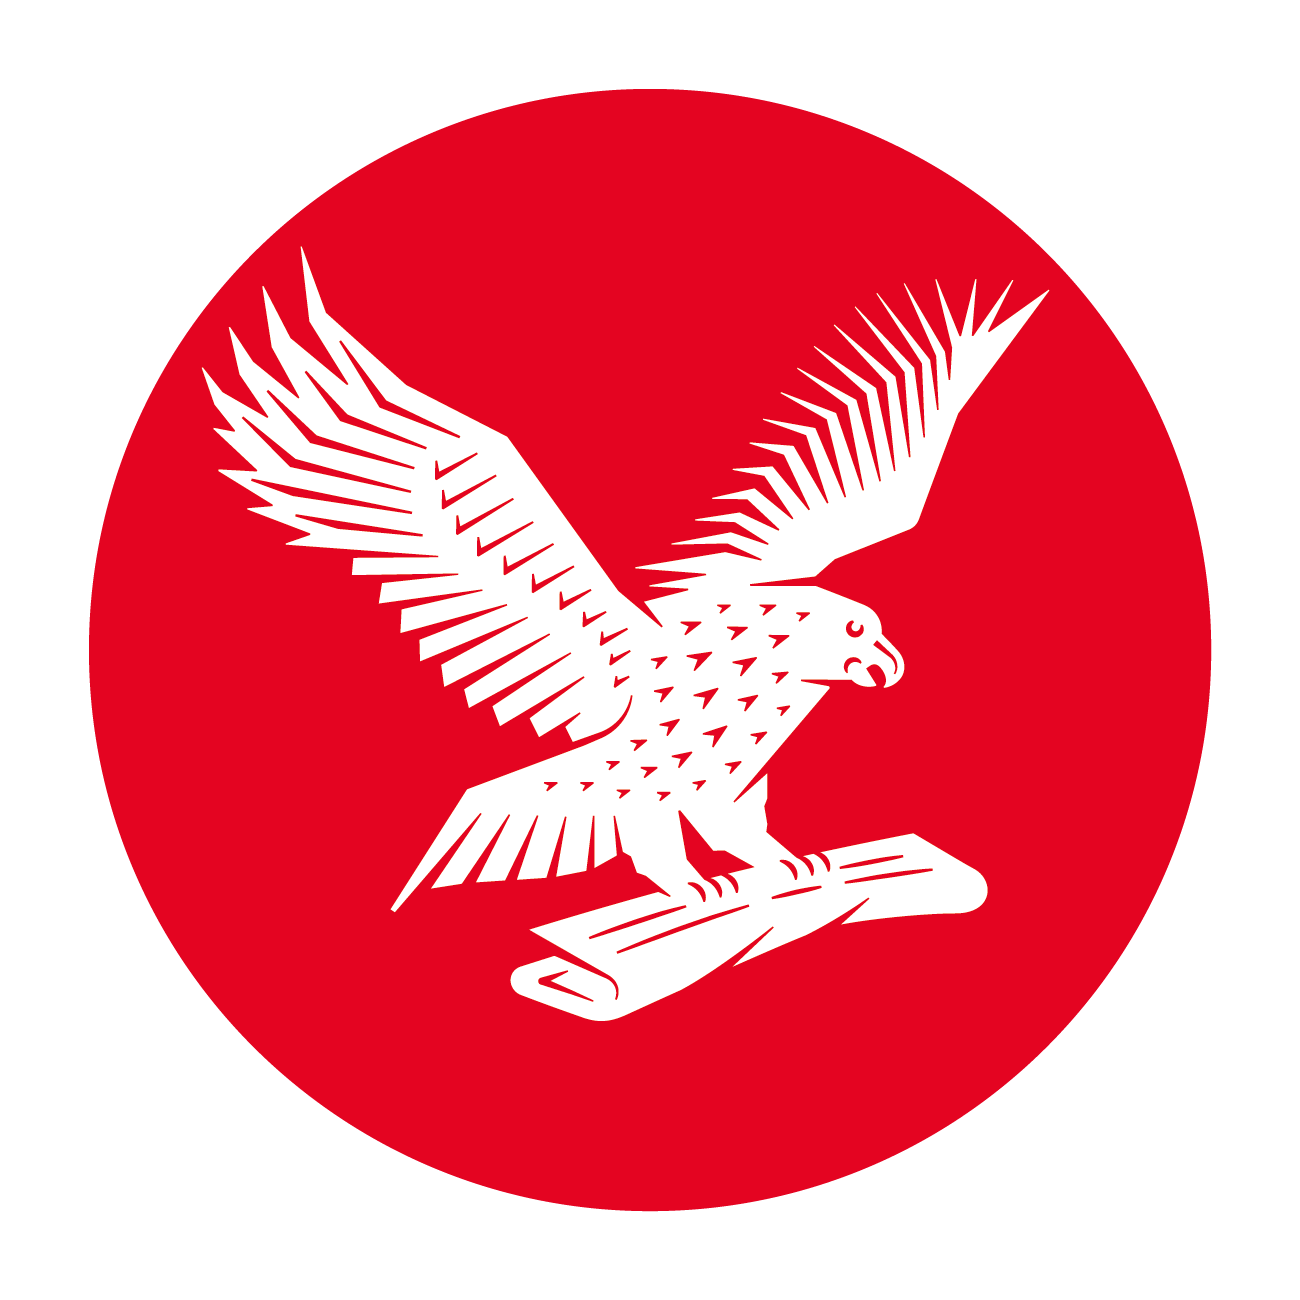 Indy Eagle Redcircle Cmyk 01